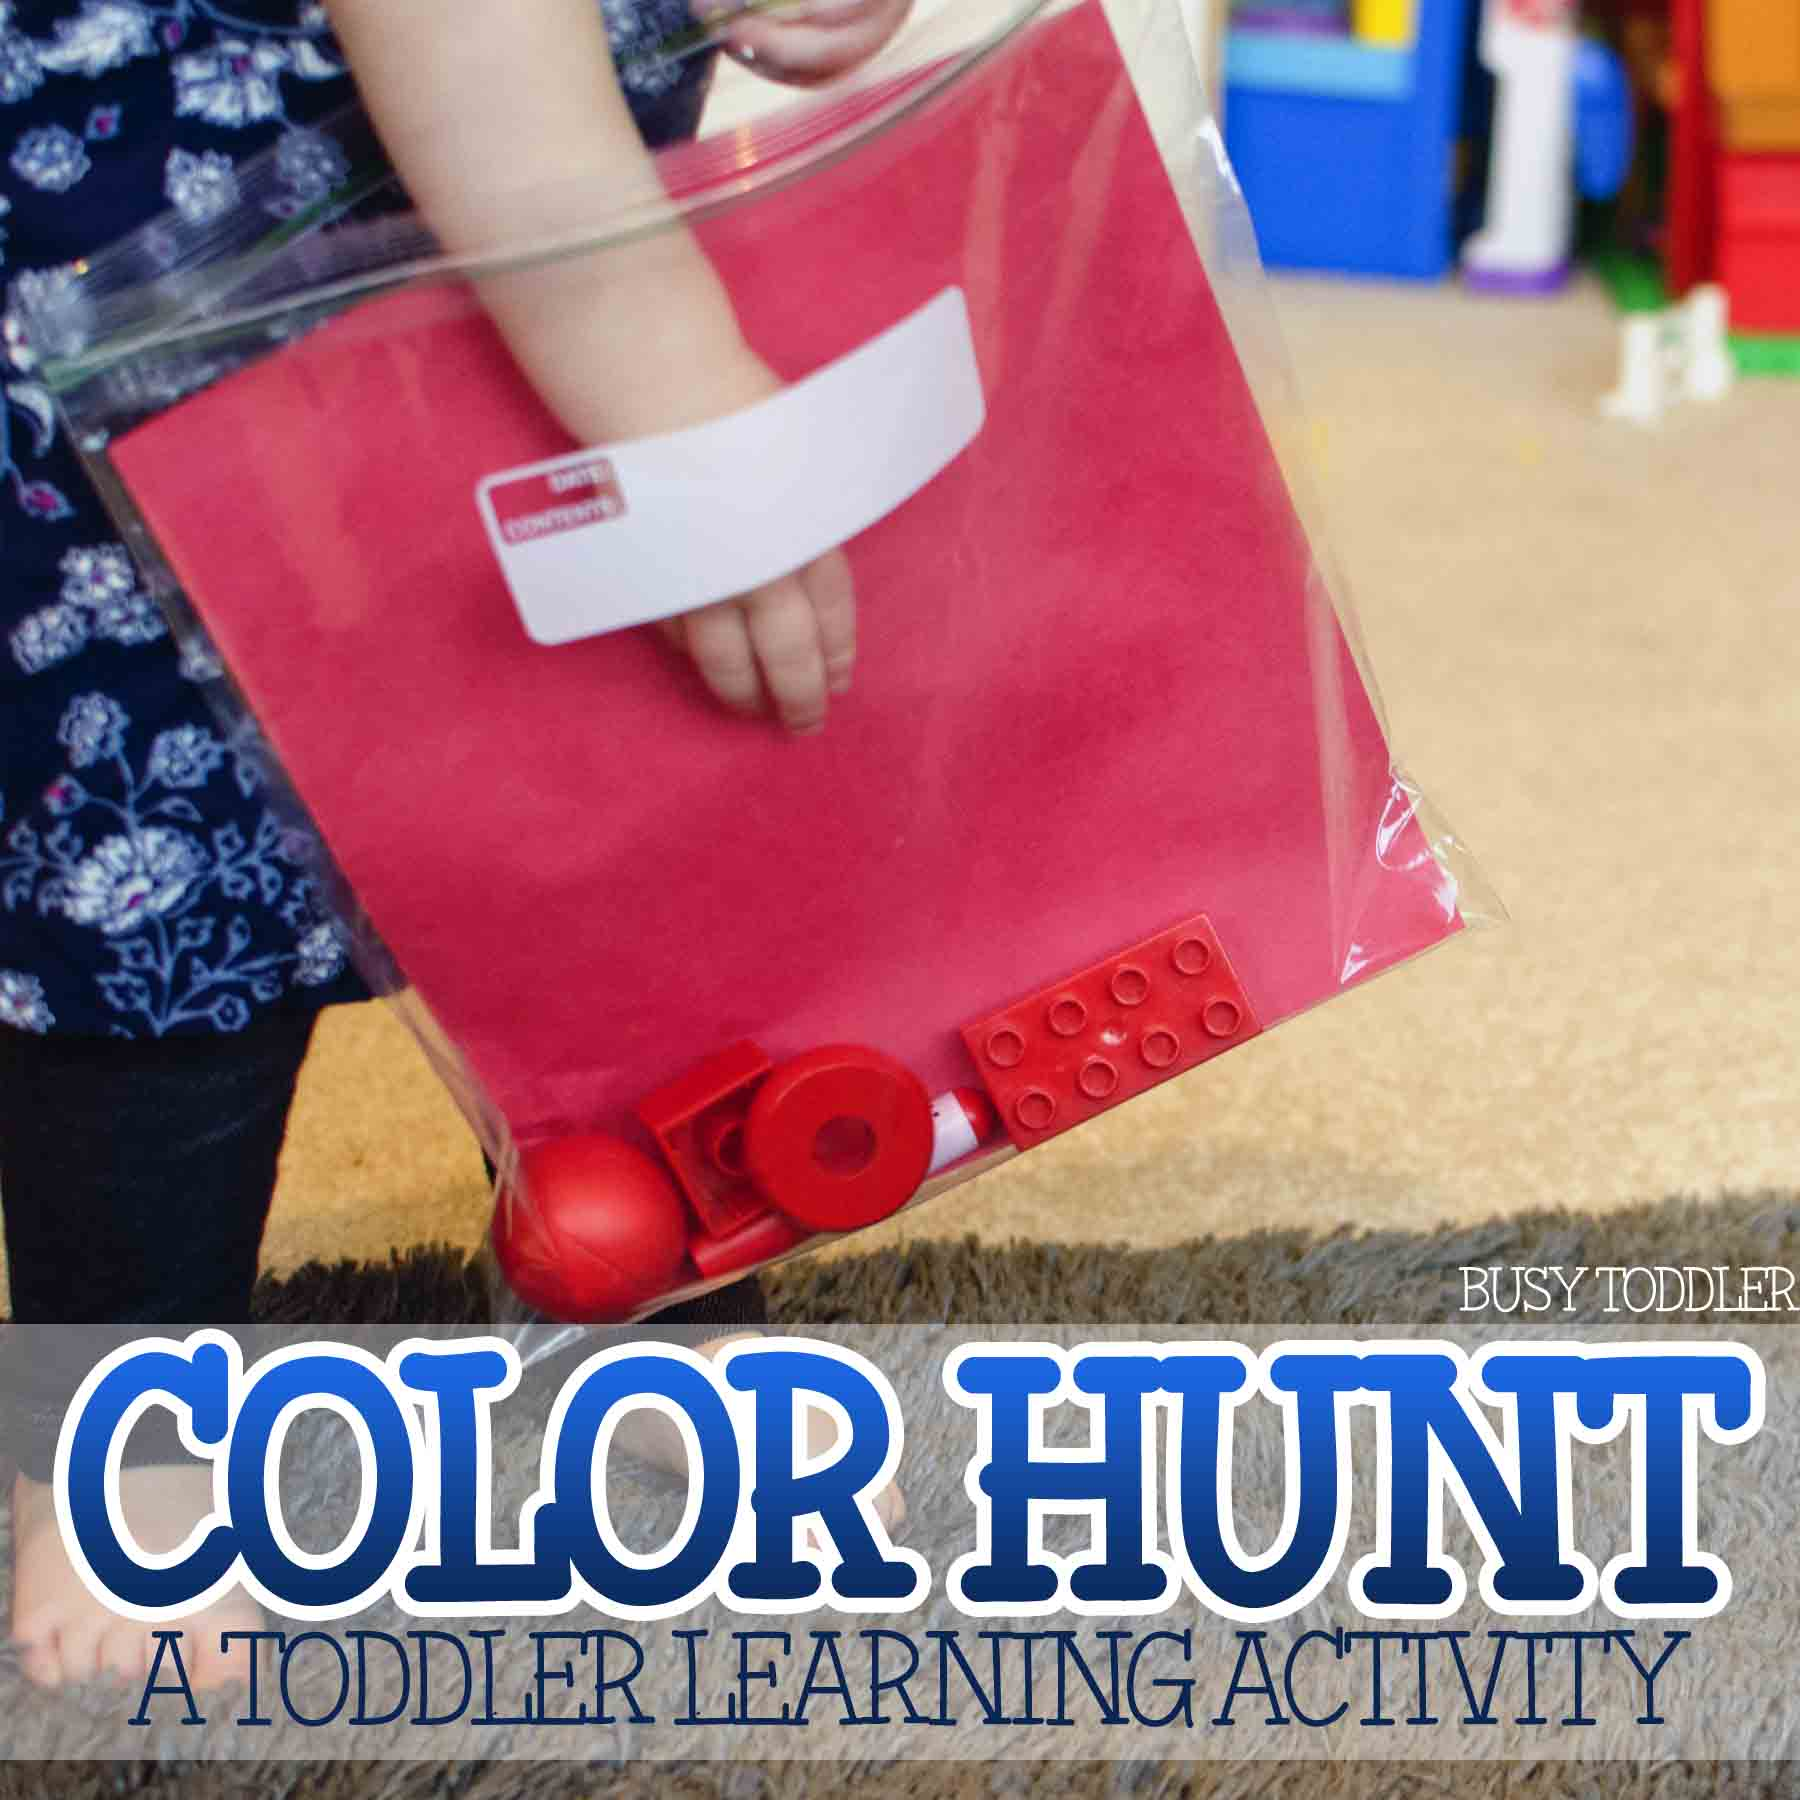 LEARNING COLORS: Teaching your toddler their colors? Check out this simple color identification activity. Quick and easy learning activity for toddlers.